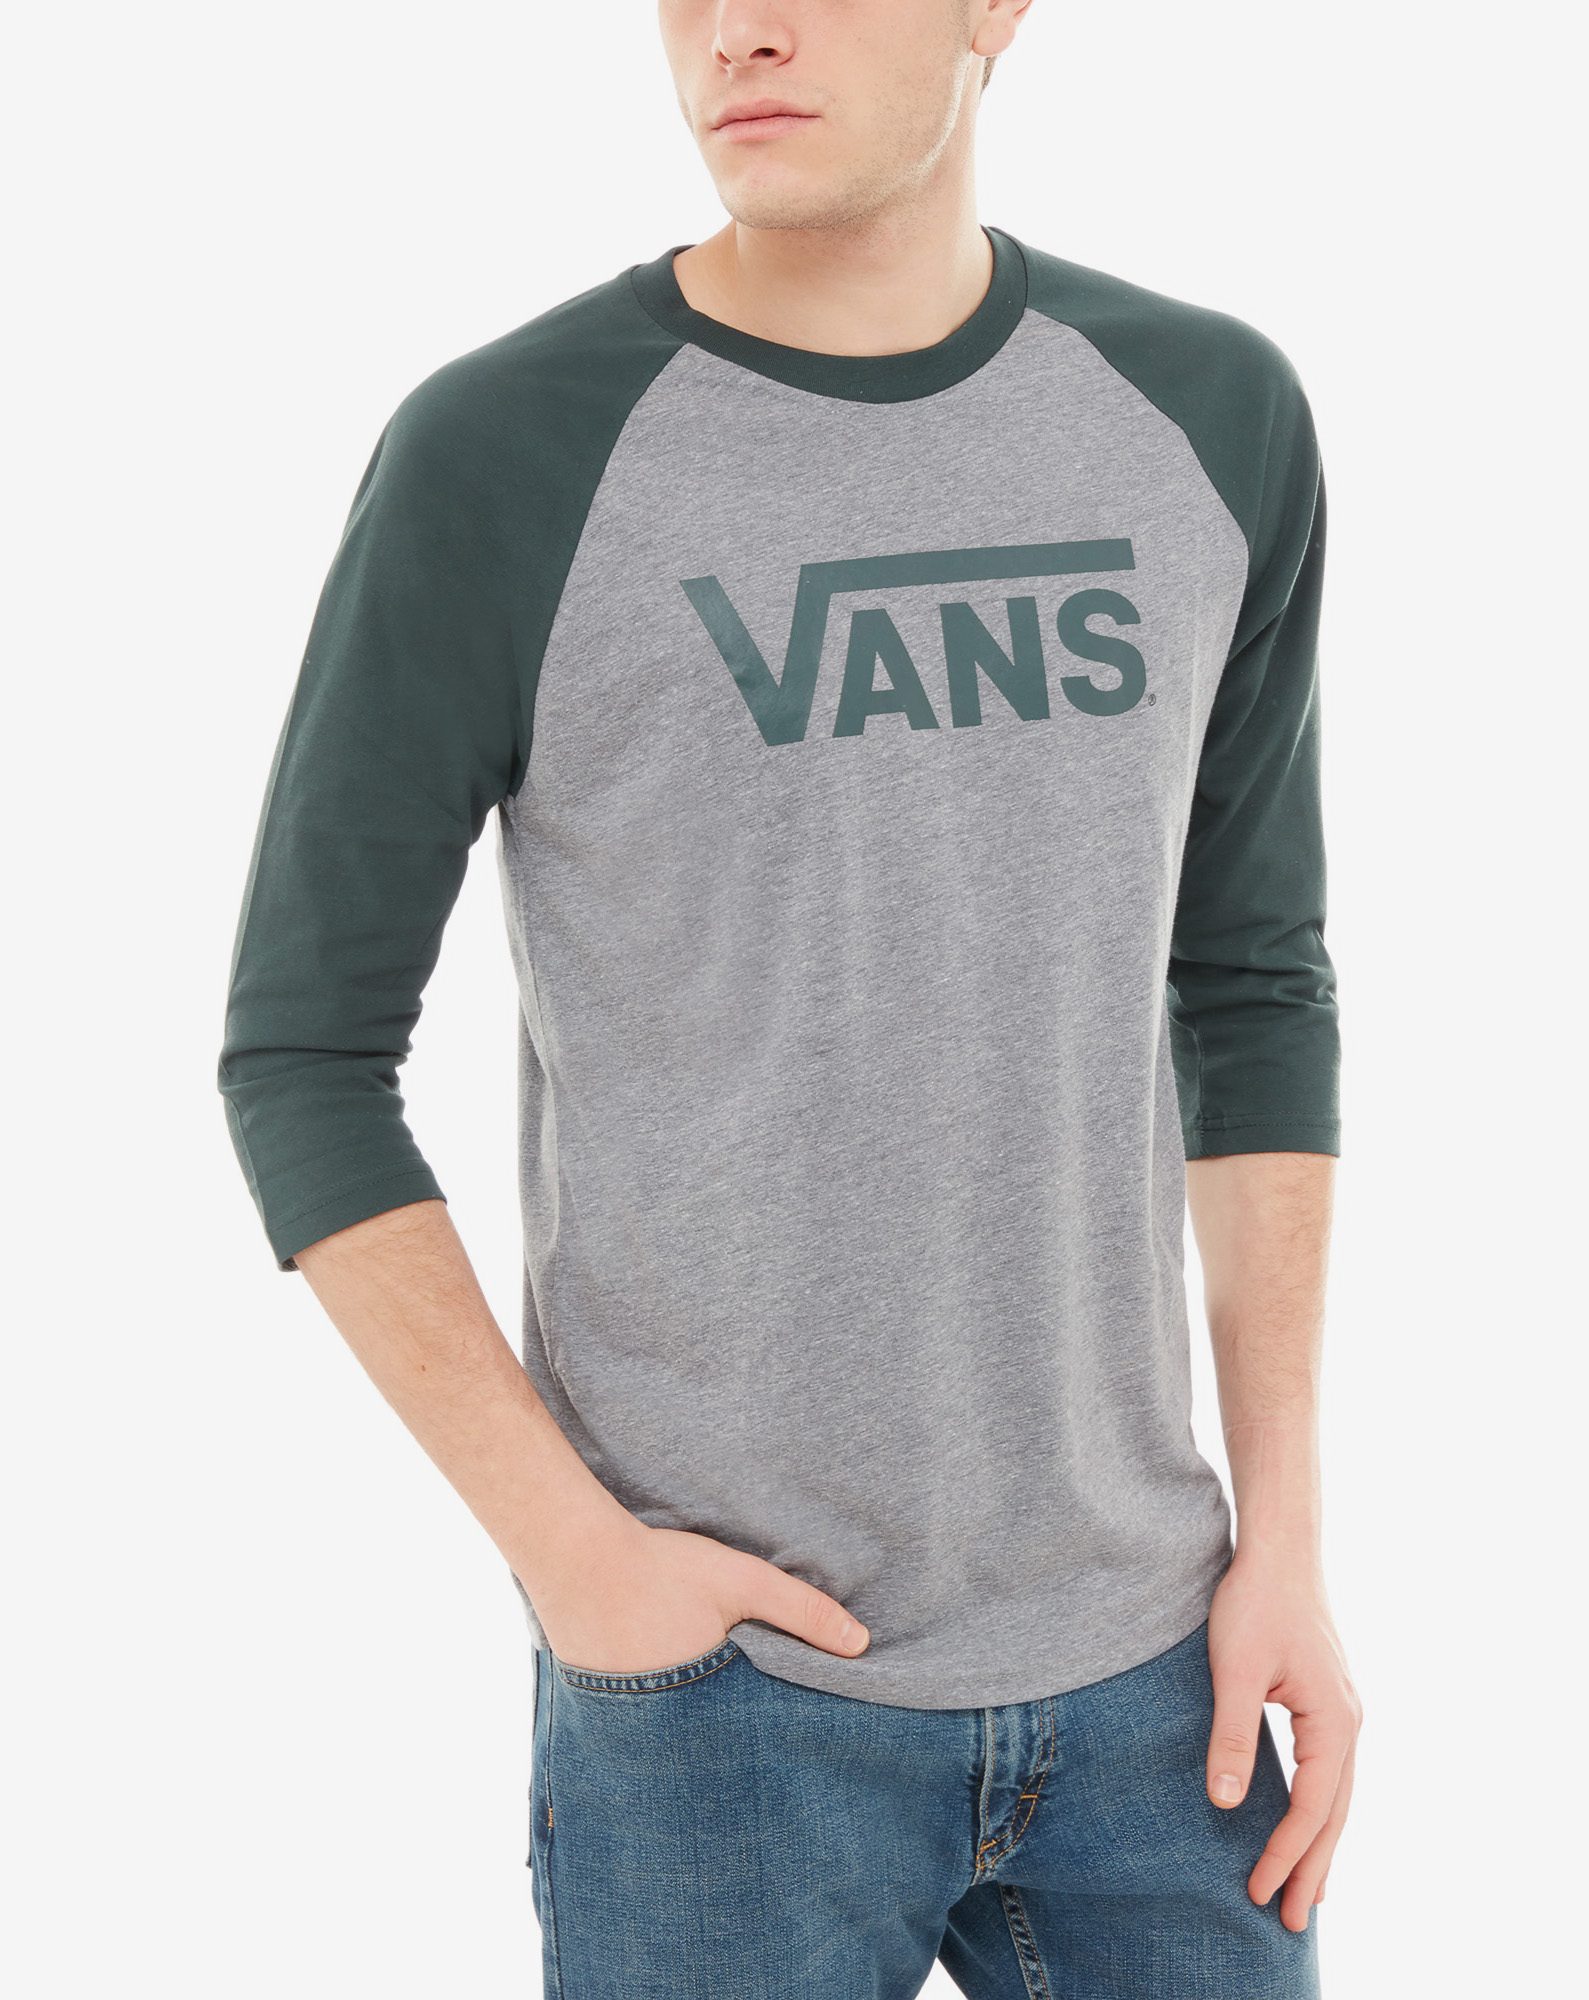 detail MN VANS CLASSIC RAGL HEATHER GREY